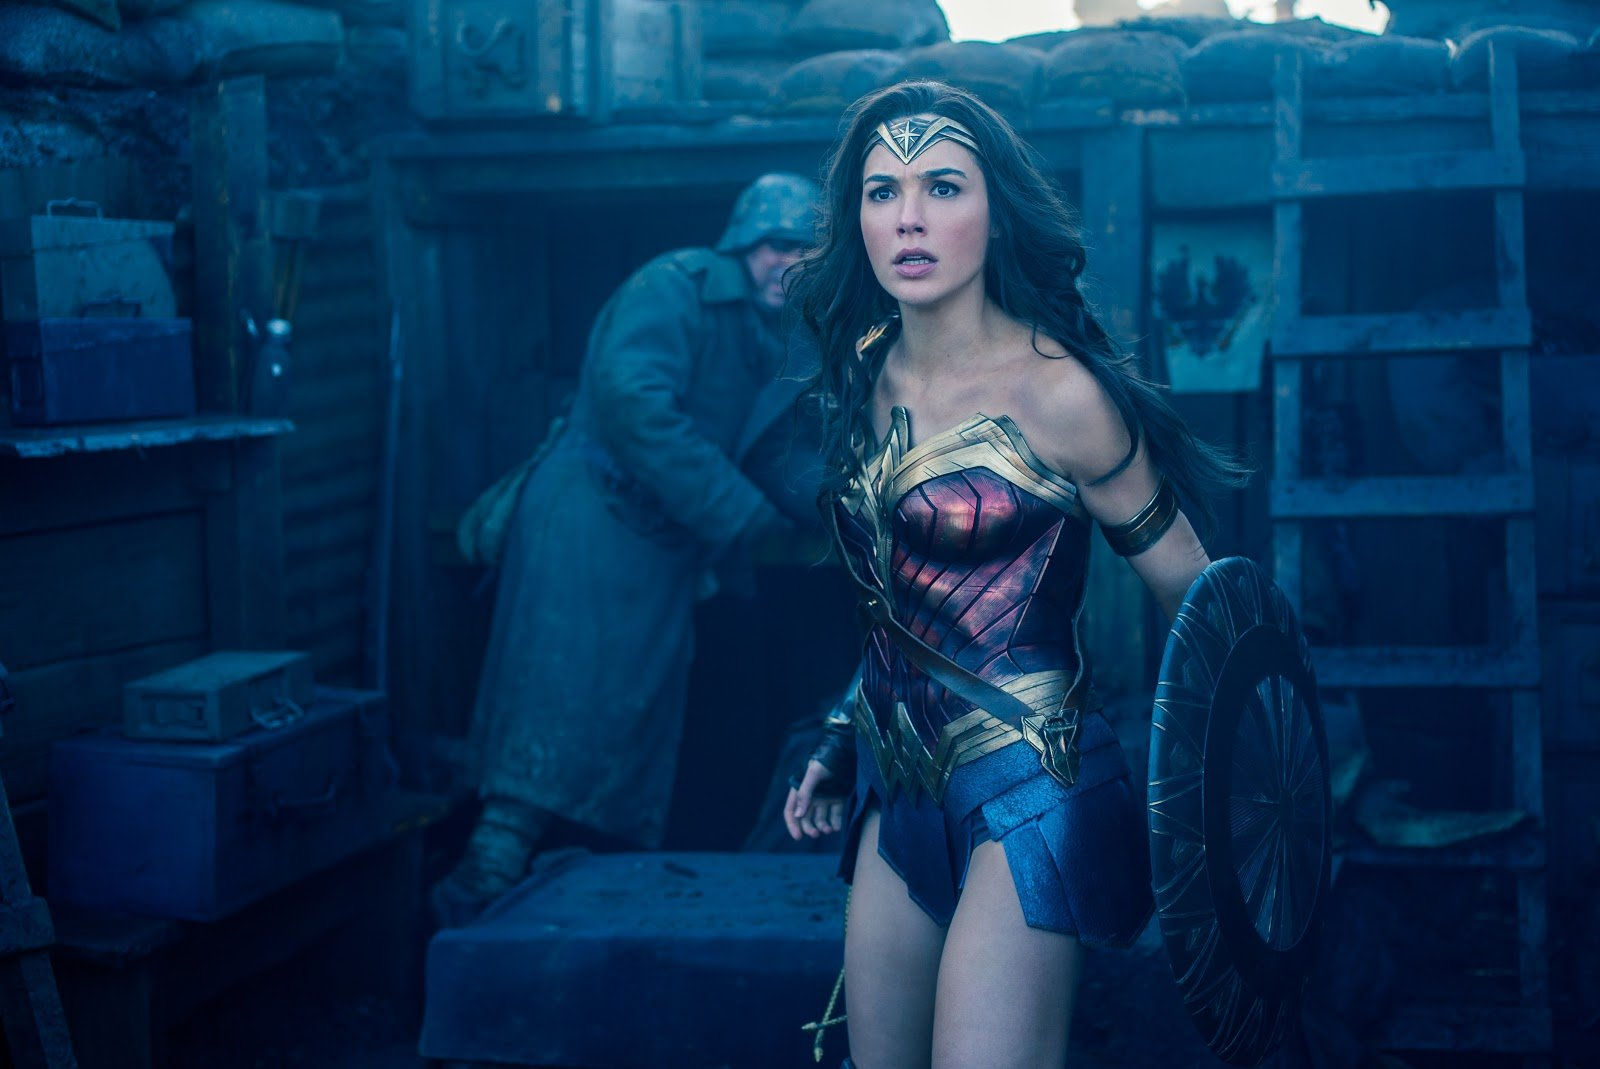 Gal Gadot Says Wonder Woman Stands For Love, Justice And Compassion